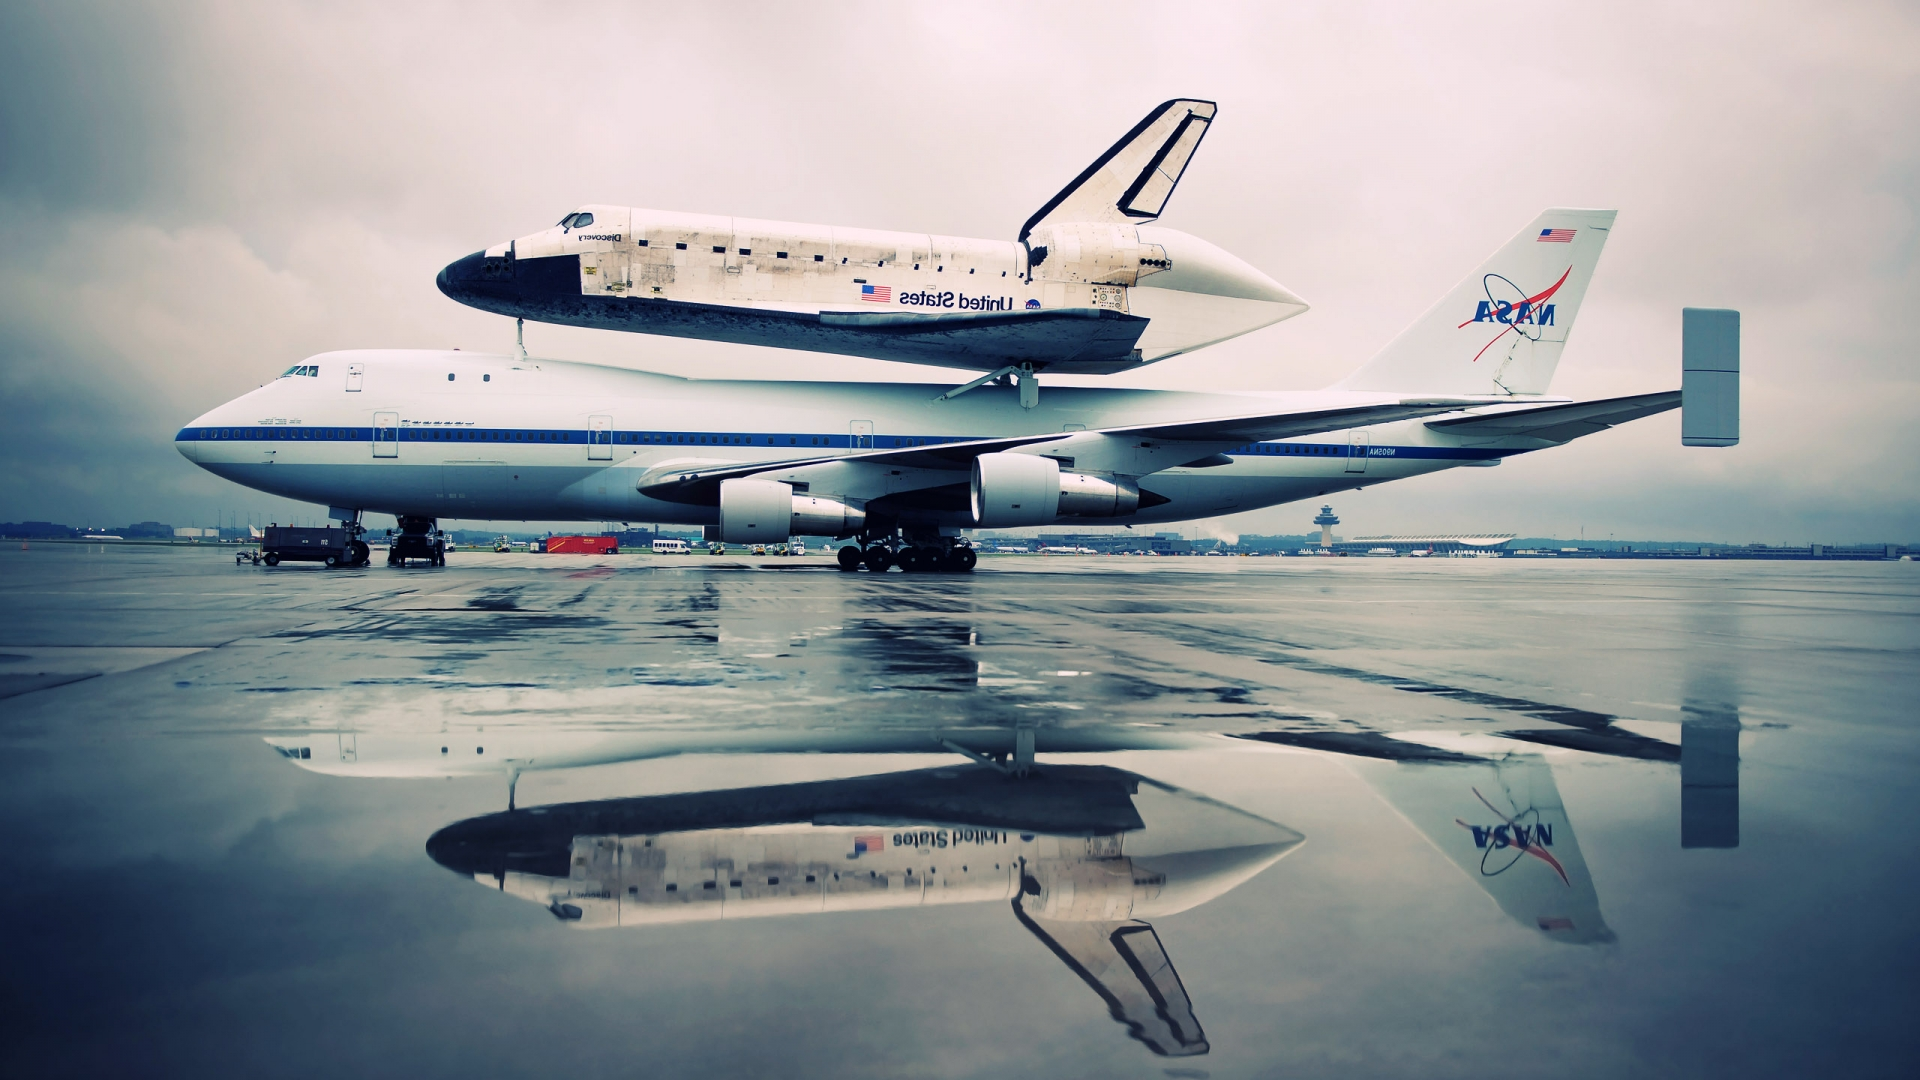 Discovery Wallpapers In Hd Wallpaper - Space Shuttle Wallpaper Hd , HD Wallpaper & Backgrounds